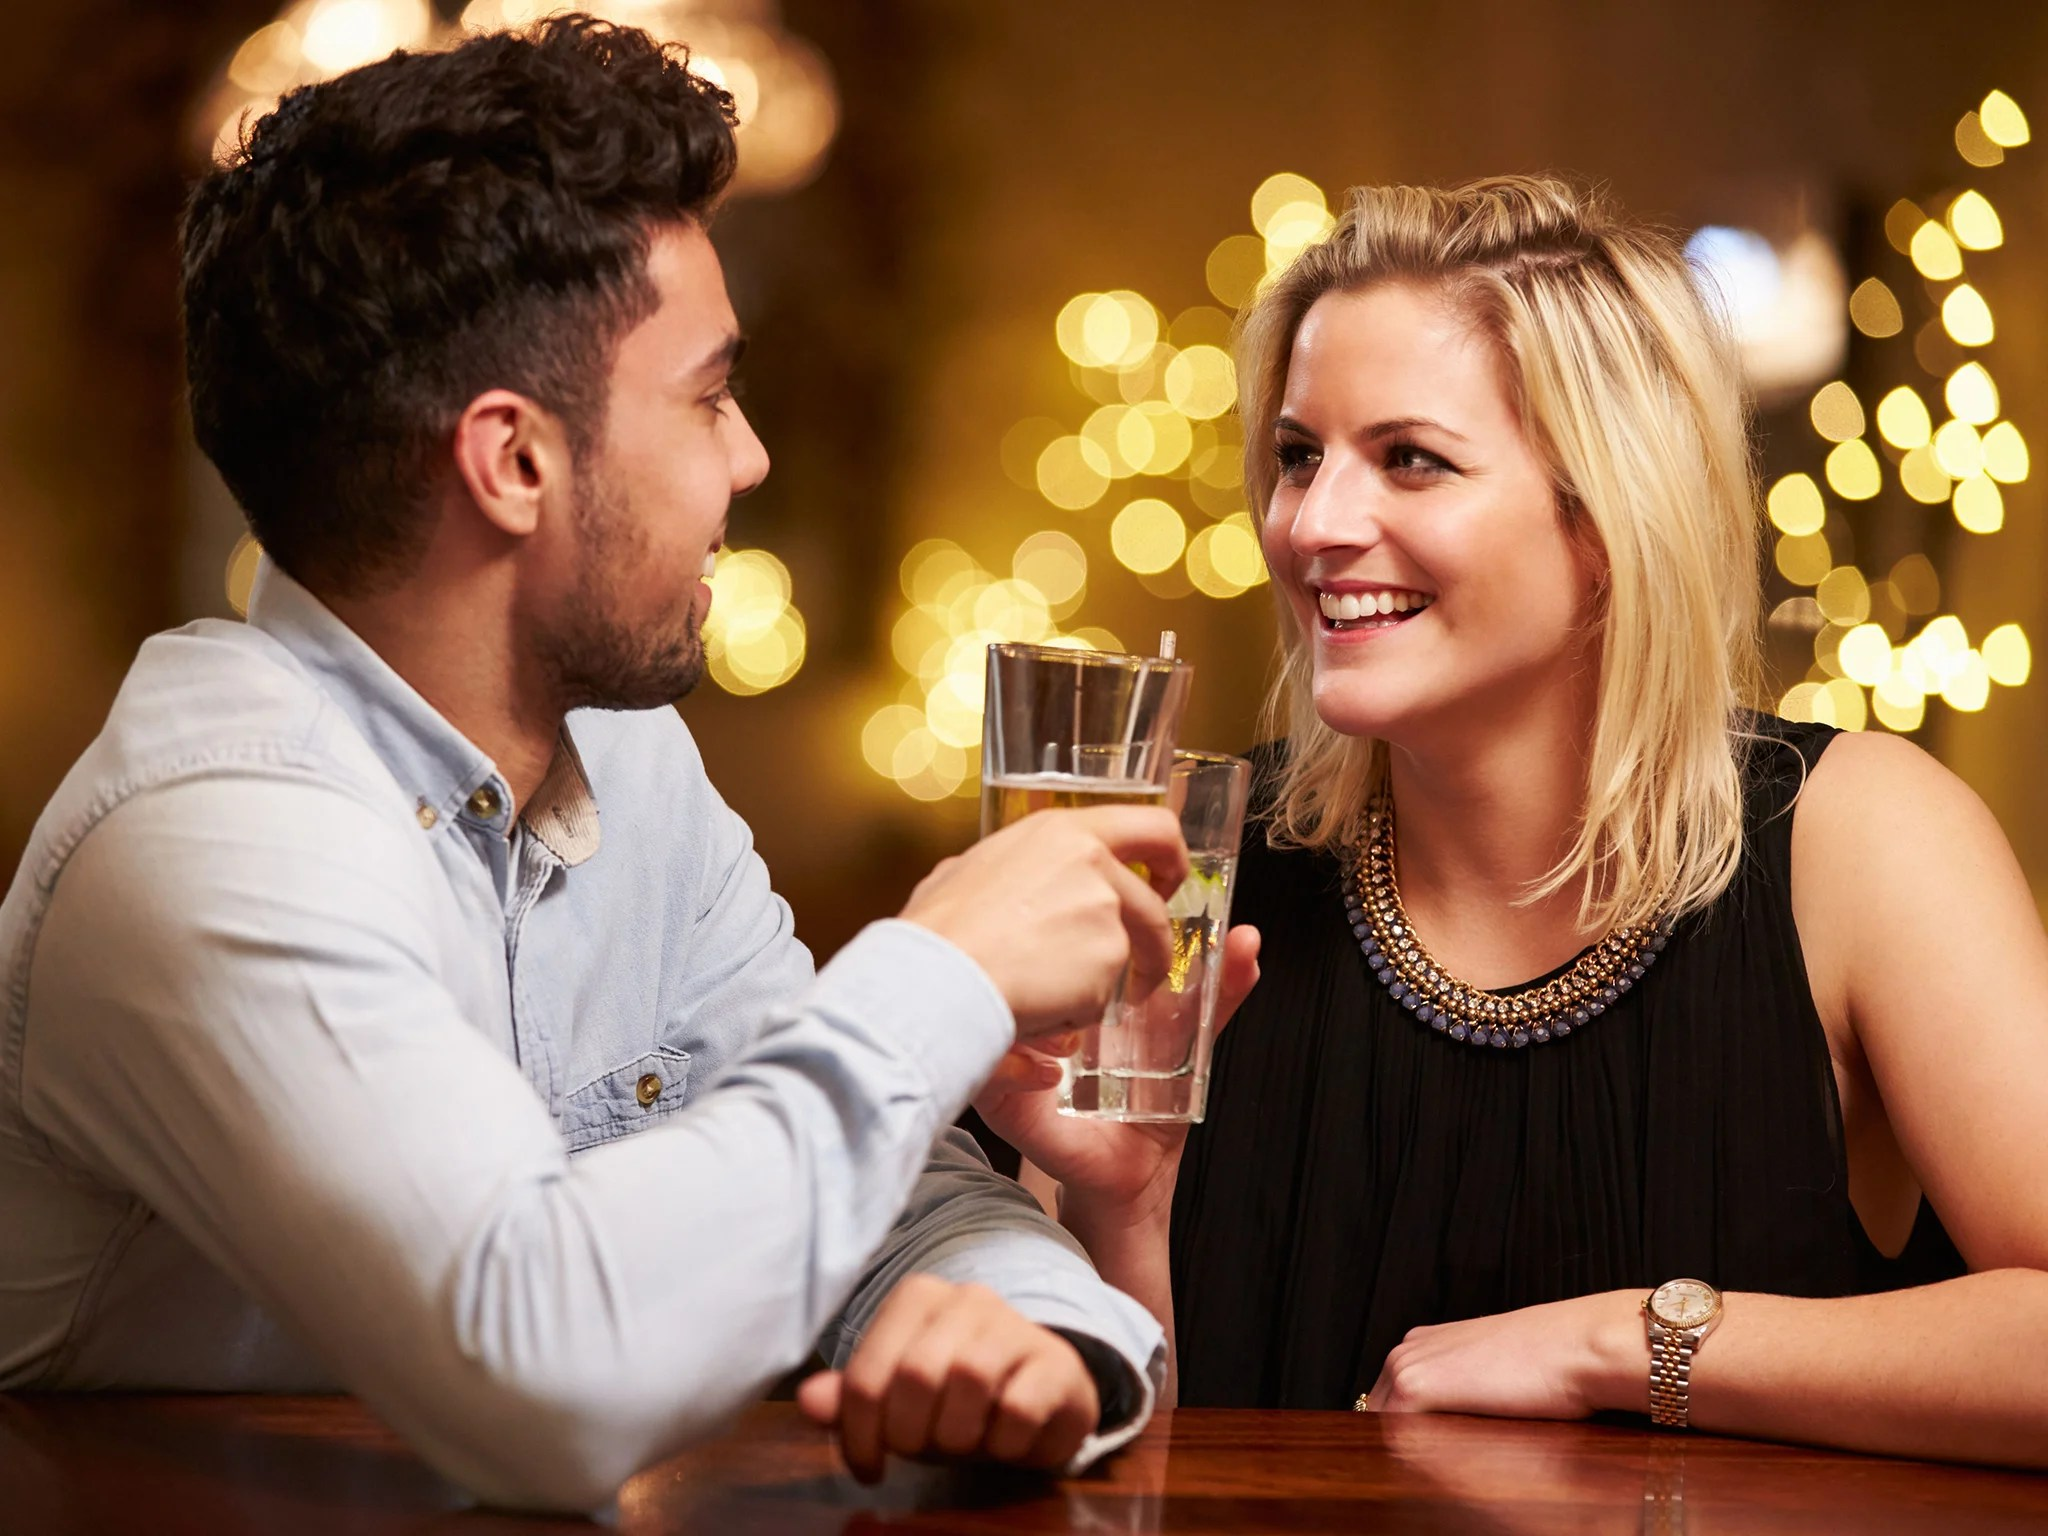 Dating: There are no rules of attraction when it comes to ...